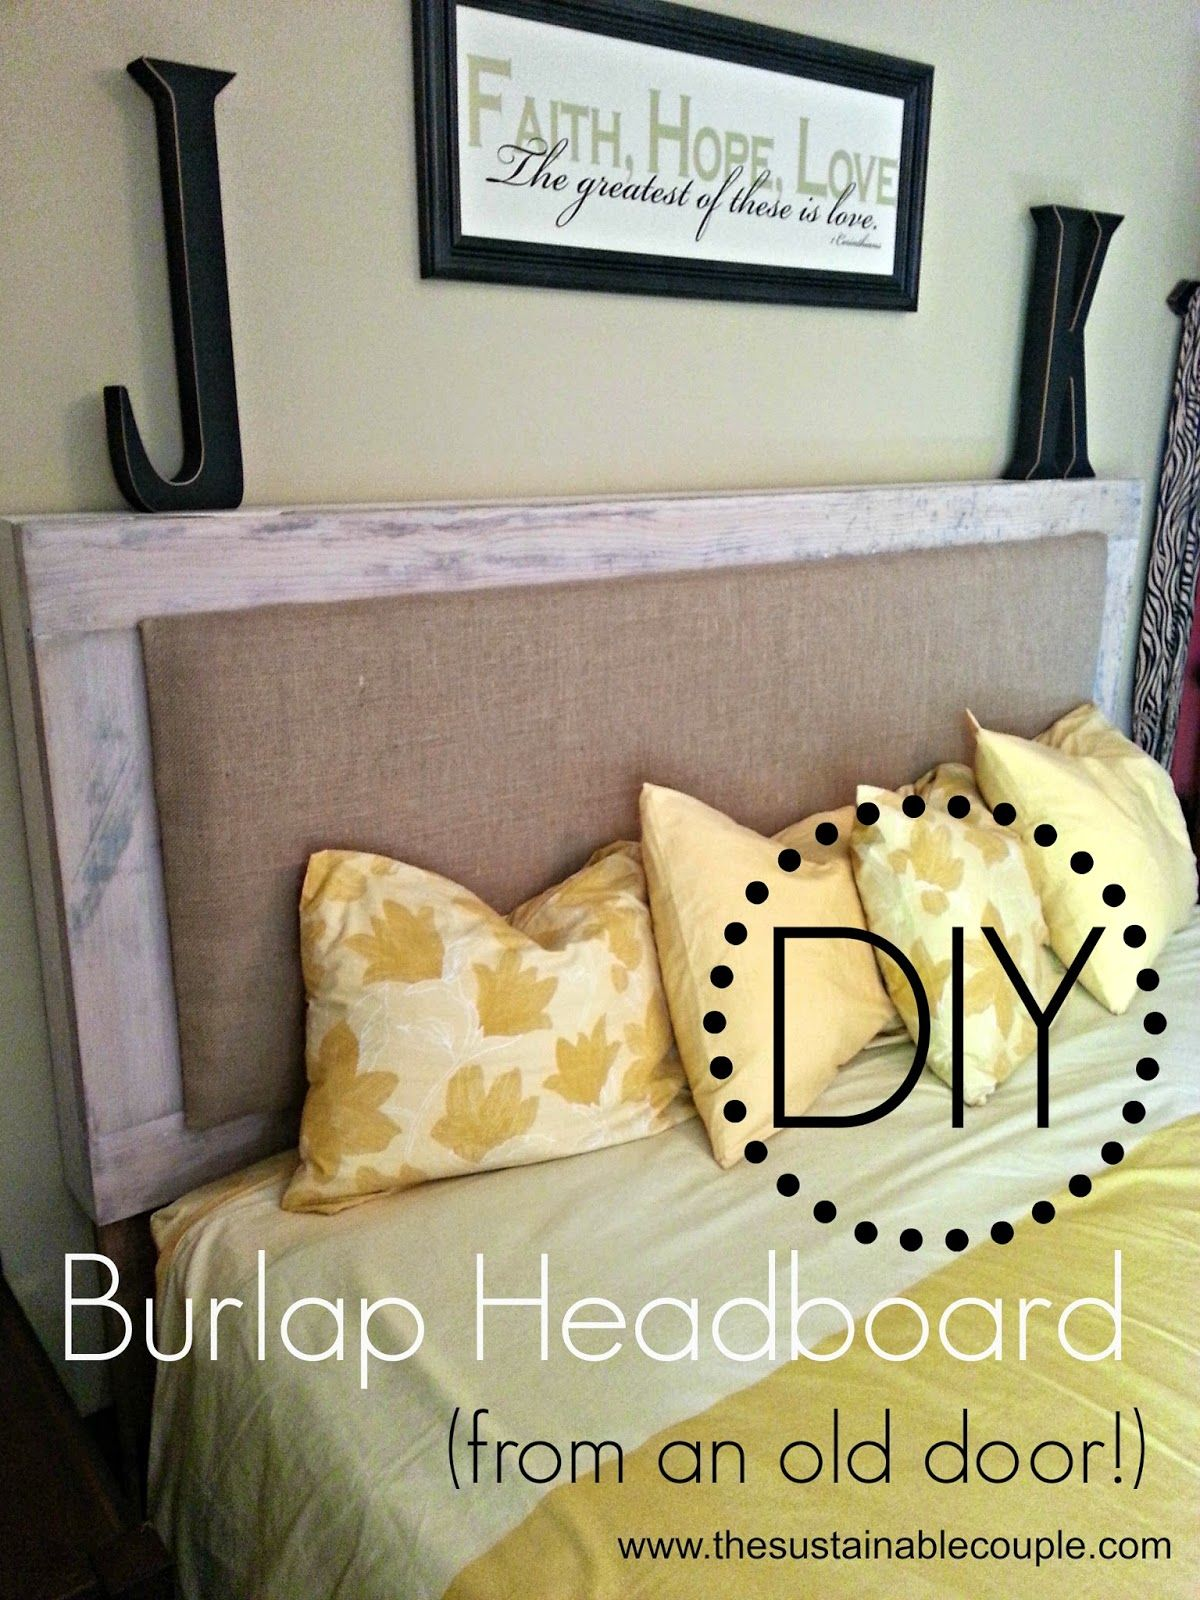 The Sustainable Couple Diy Padded Burlap Headboard From An Old